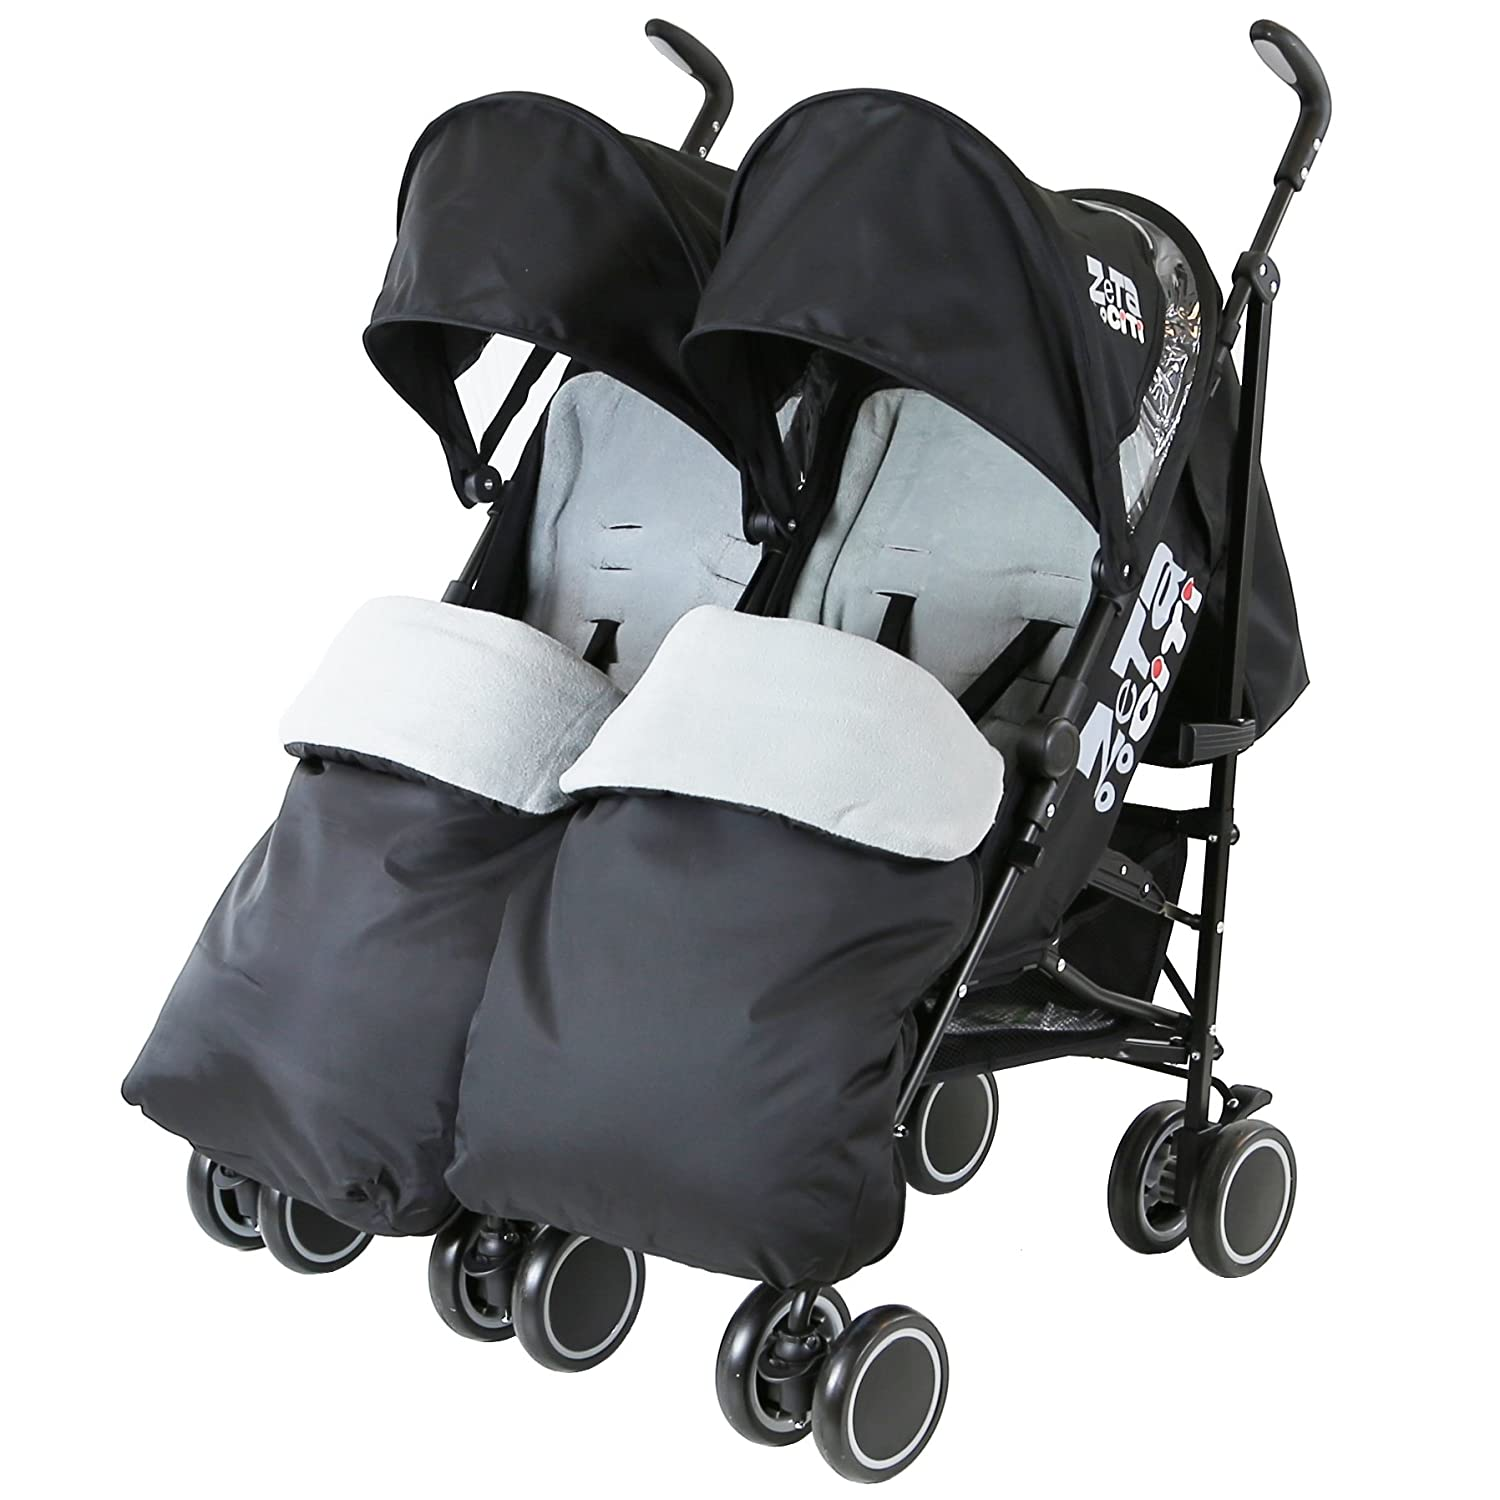 Zeta Citi TWIN Stroller Buggy Pushchair - Black Double Stroller Complete With FootMuffs Baby TravelTM